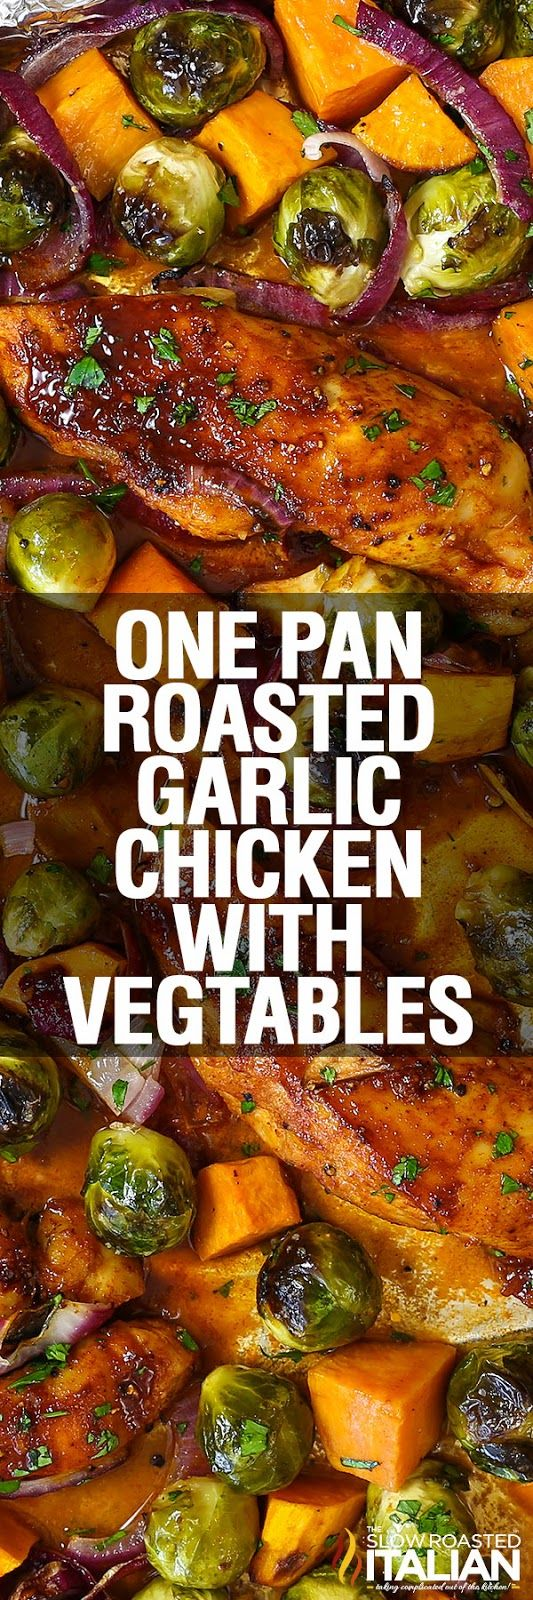 One Pan Roasted Garlic Chicken is a simple recipe for a sheet pan supper that your family will thank you for. Moist and tender chicken is bursting with flavor from the sweet heat honey garlic marinade. Brussels sprouts and sweet potatoes are roasted to caramelized perfection. The ultimate family dinner, this one pan recipe is one that you will be making again and again.